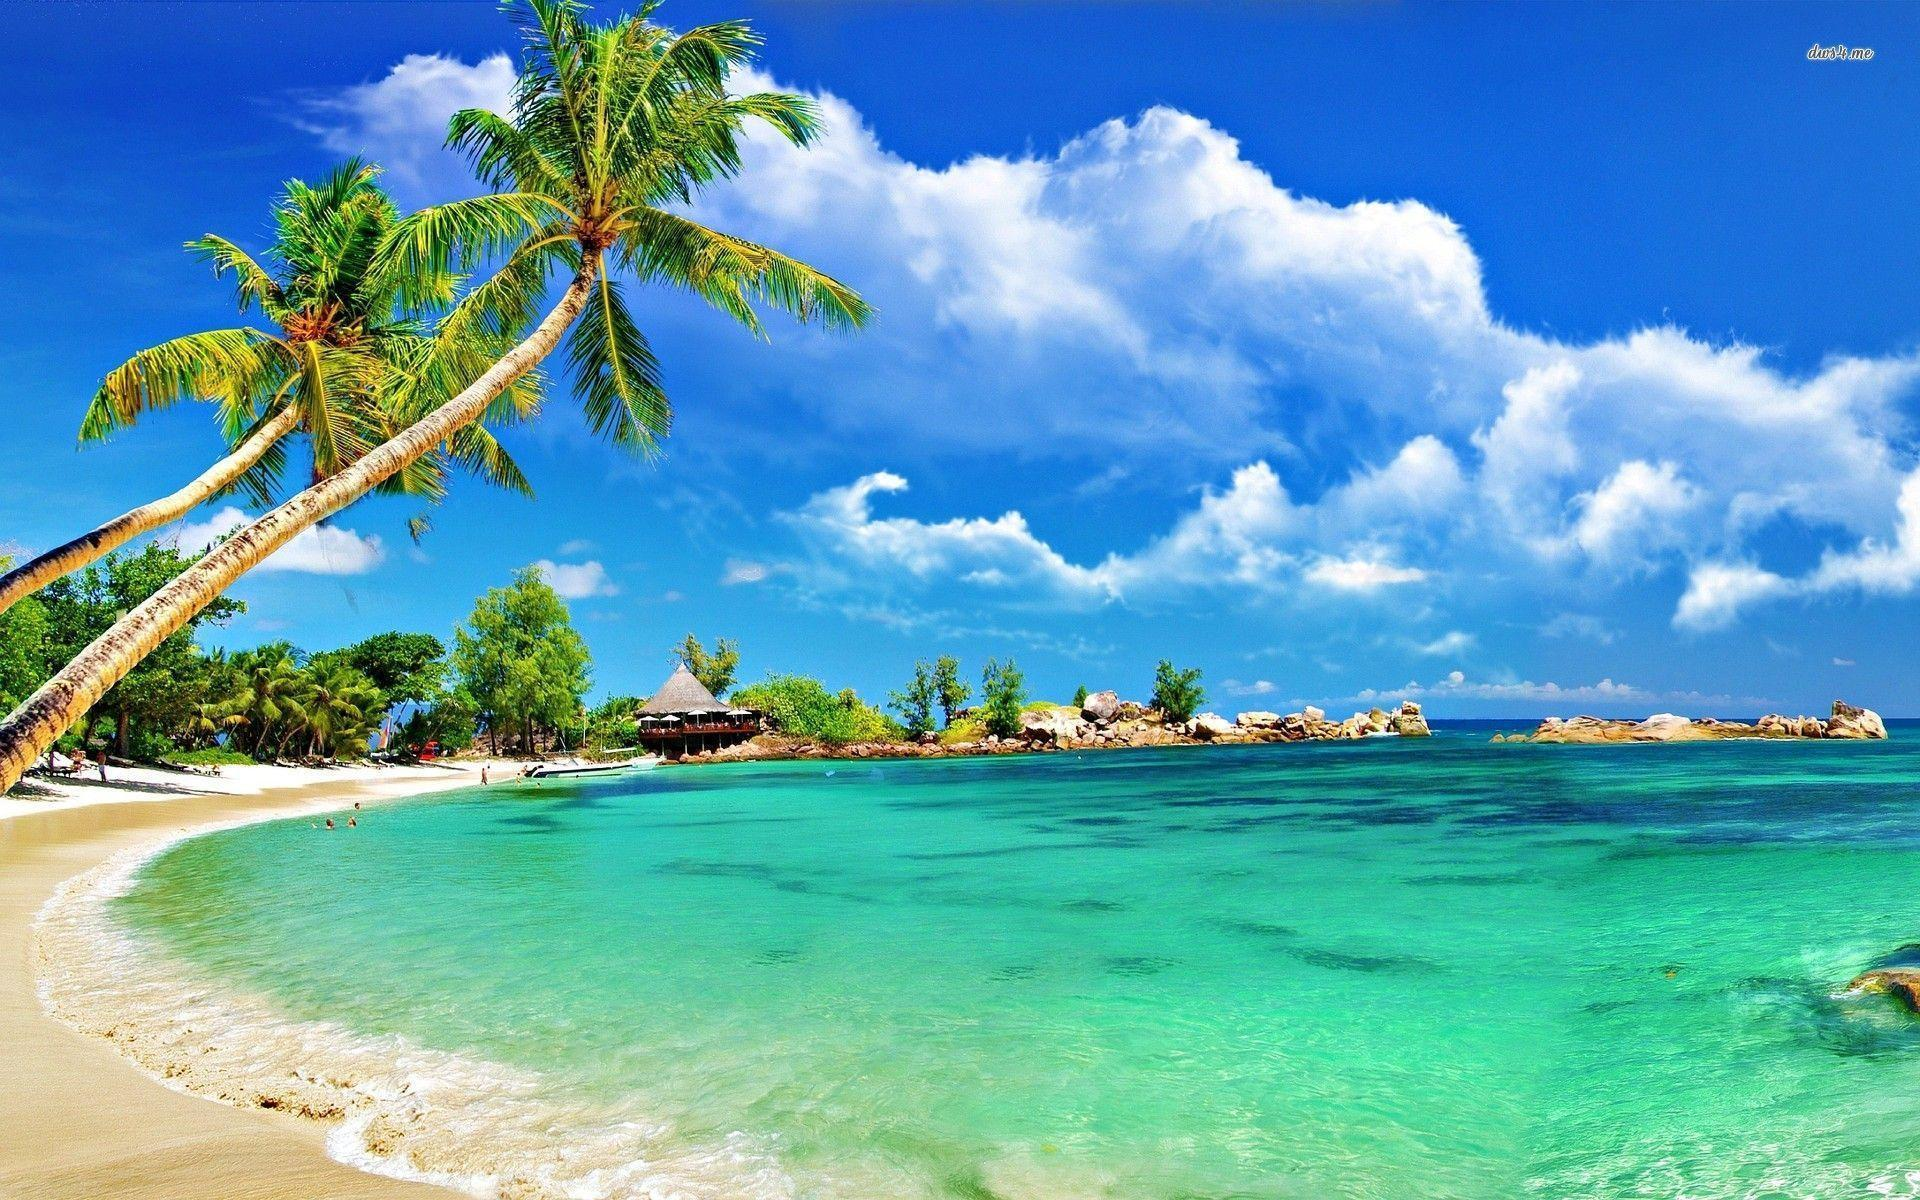 Best Beaches Around The World - Little Letters Linked